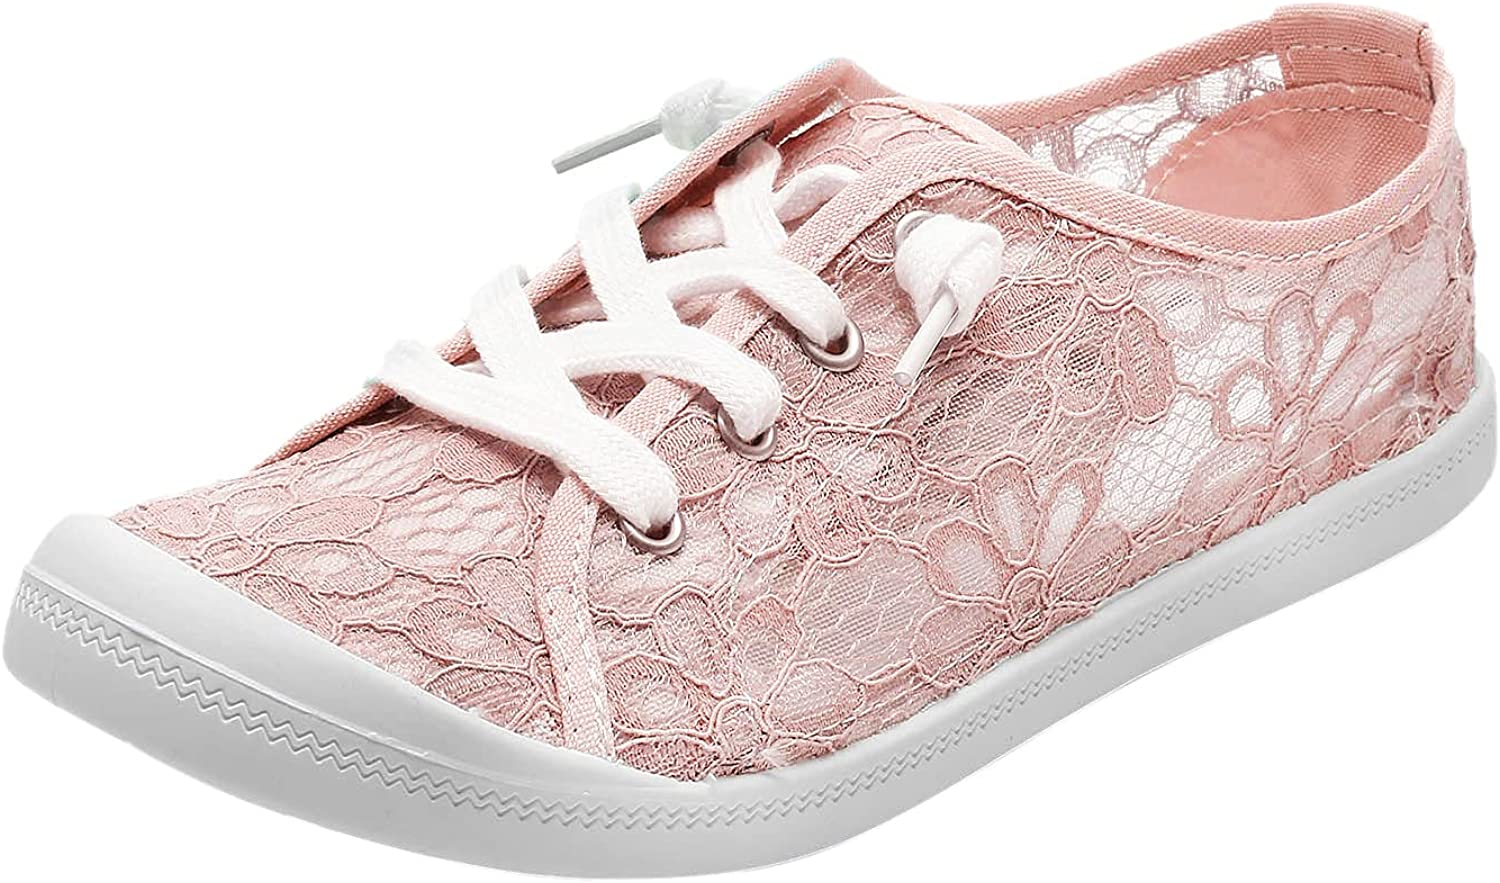 Women's Canvas Sneakers Walking Shoes for Women Sneakers Canvas Slip On Shoes Women Sneakers Lace Up Loafers Lightweight Running Shoes